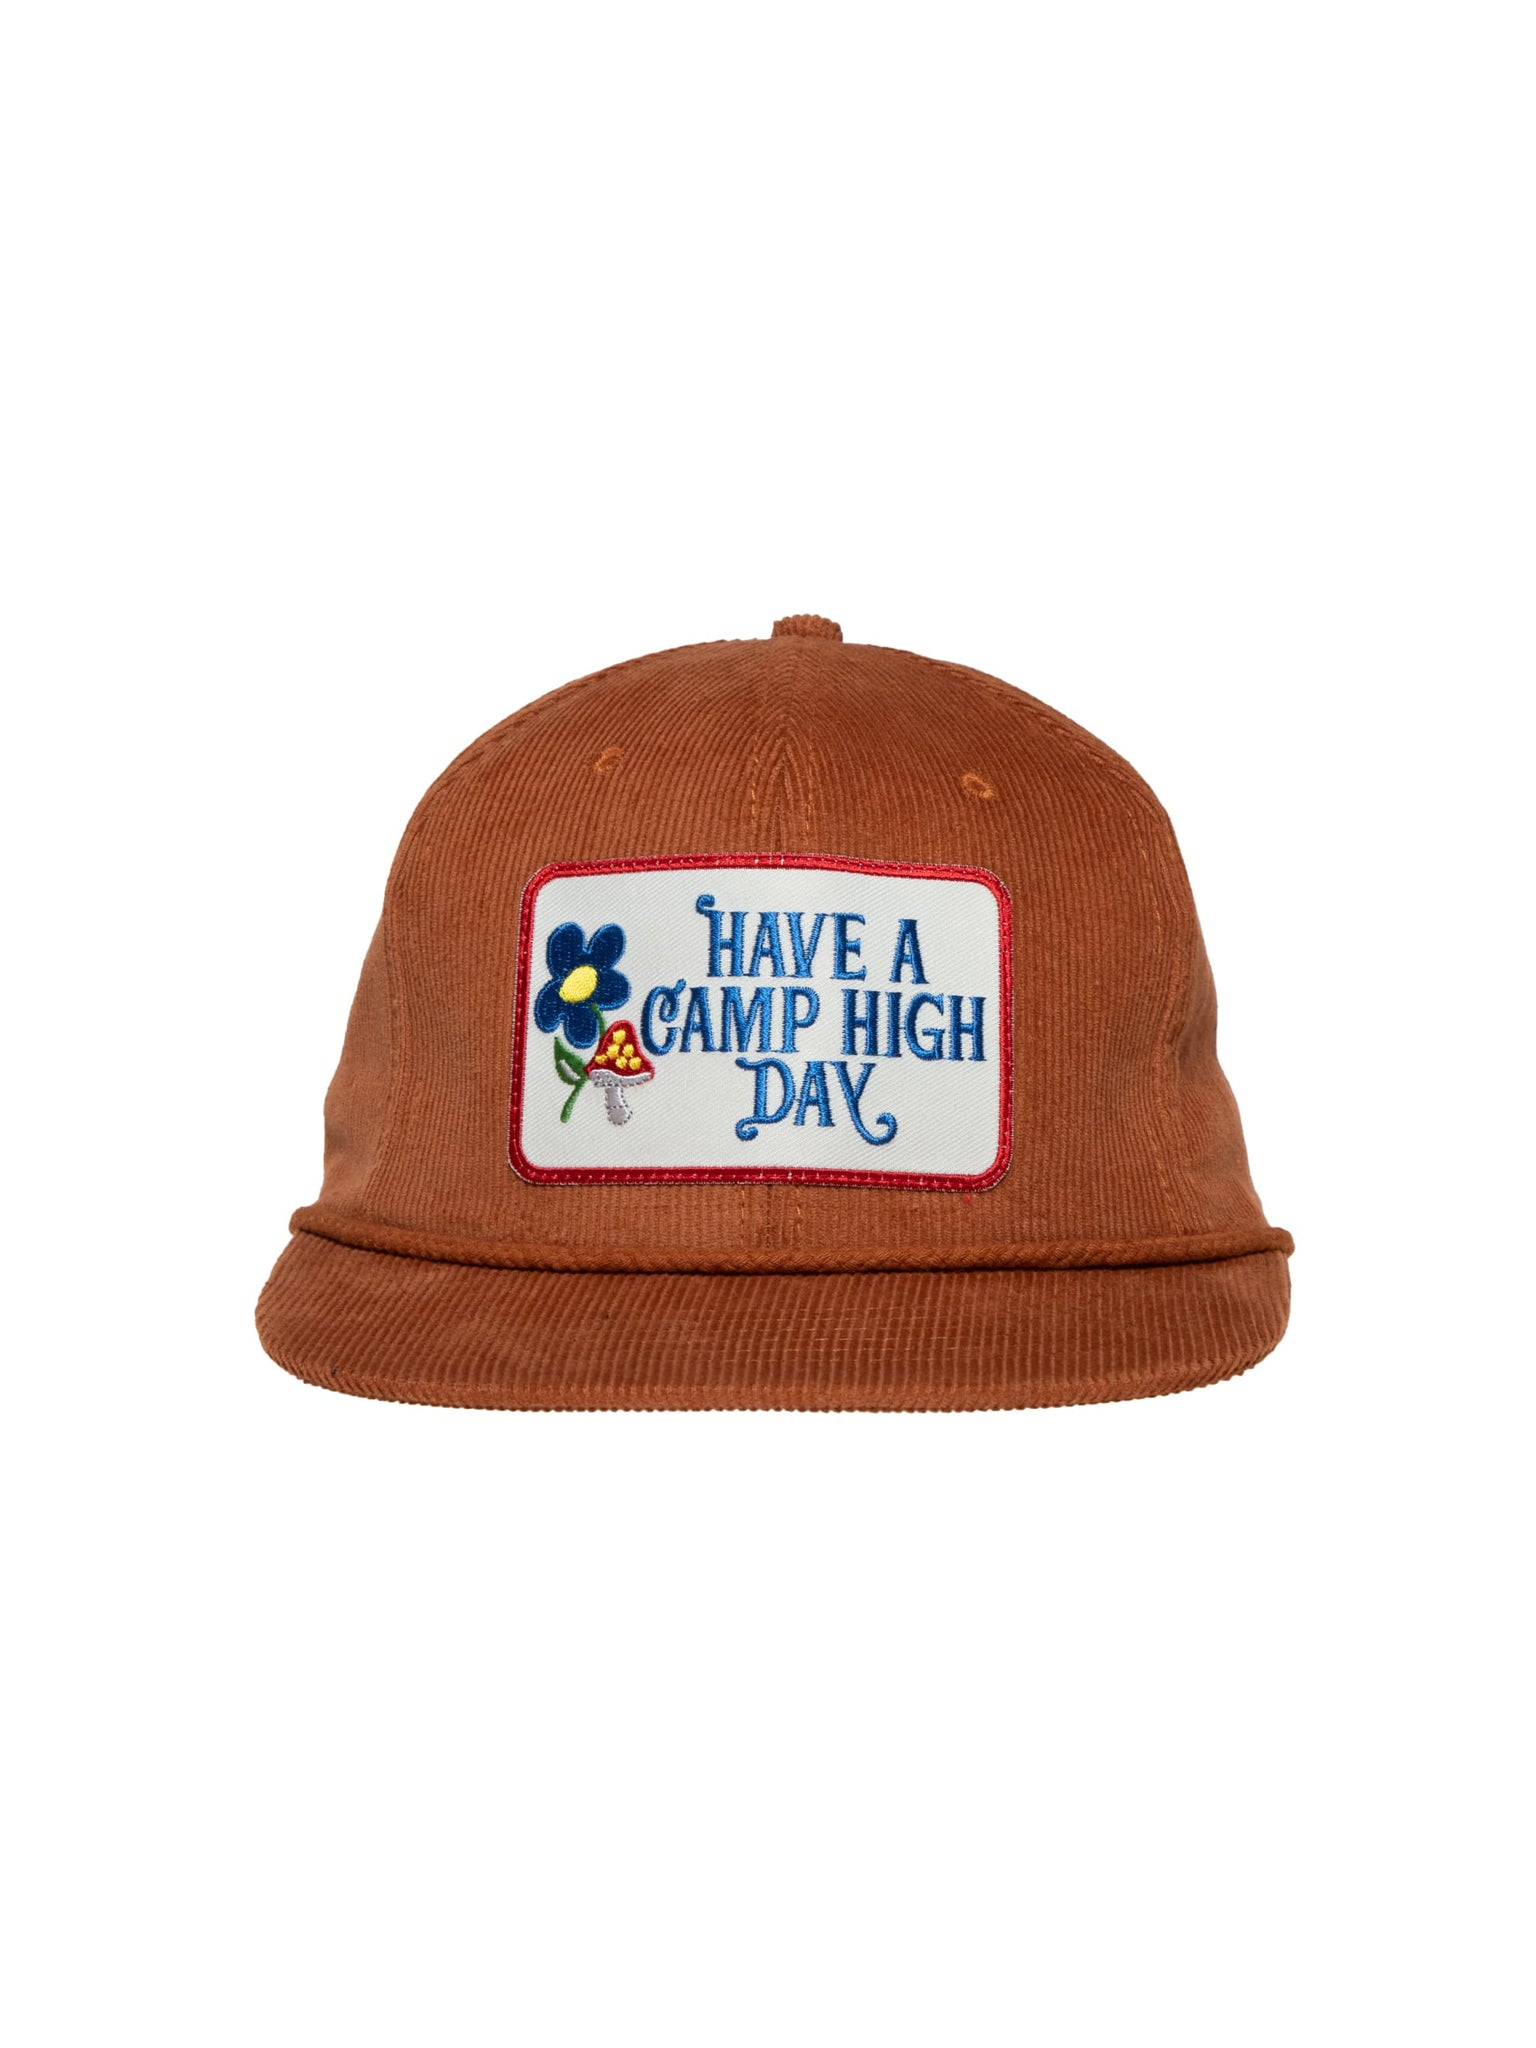 Camp High Brown Camp High Day Cord Cap